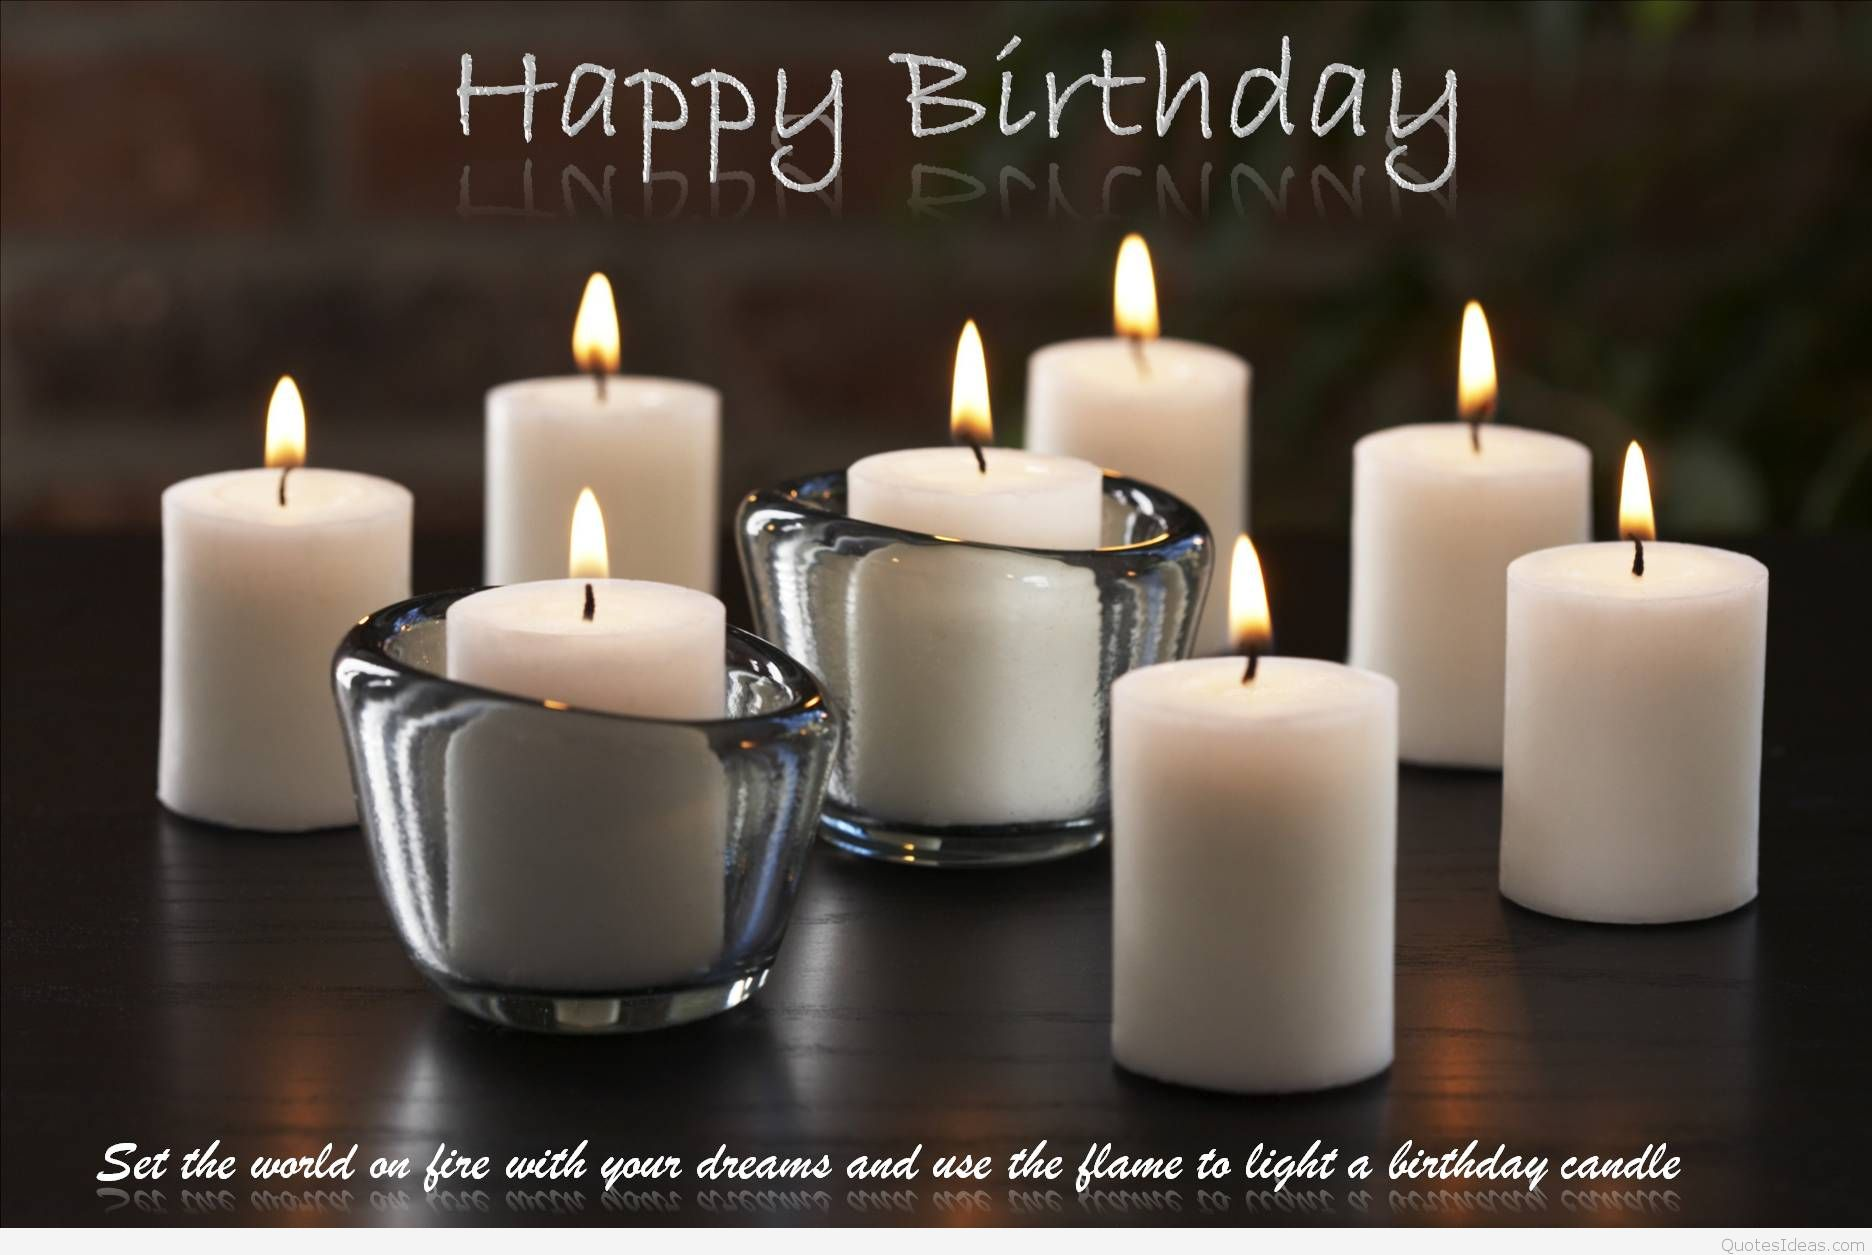 birthday wishes wallpapers with quotes ; Happy-Birthday-Friend-Quotes-Wallpaper-7